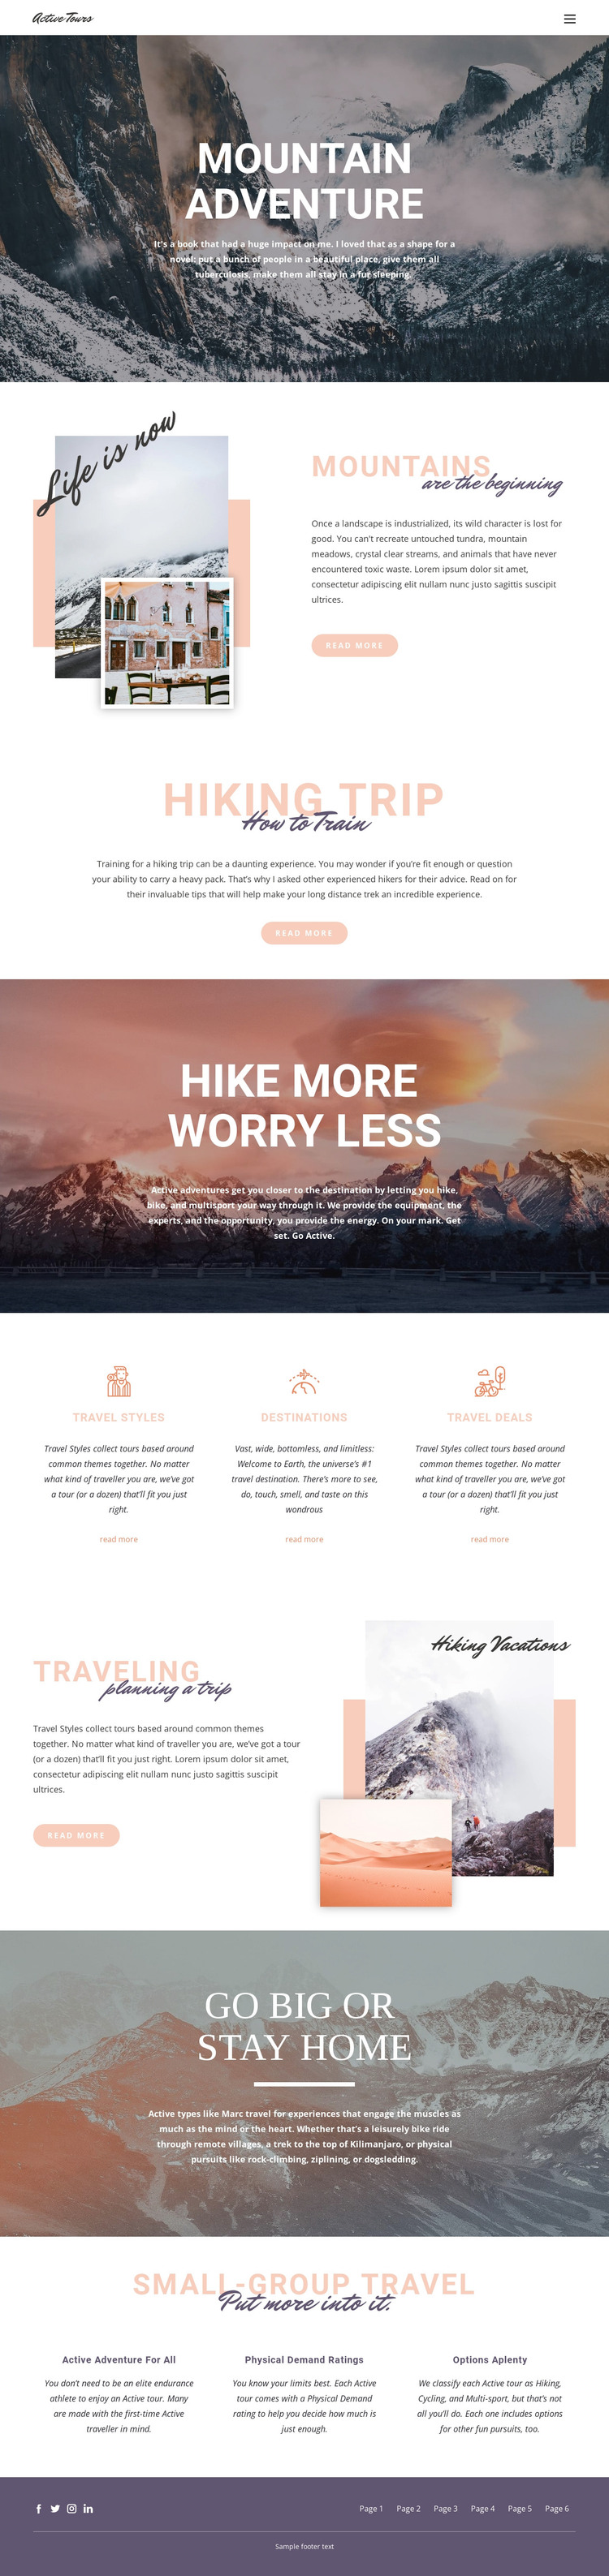 Guided backpacking trips Web Design